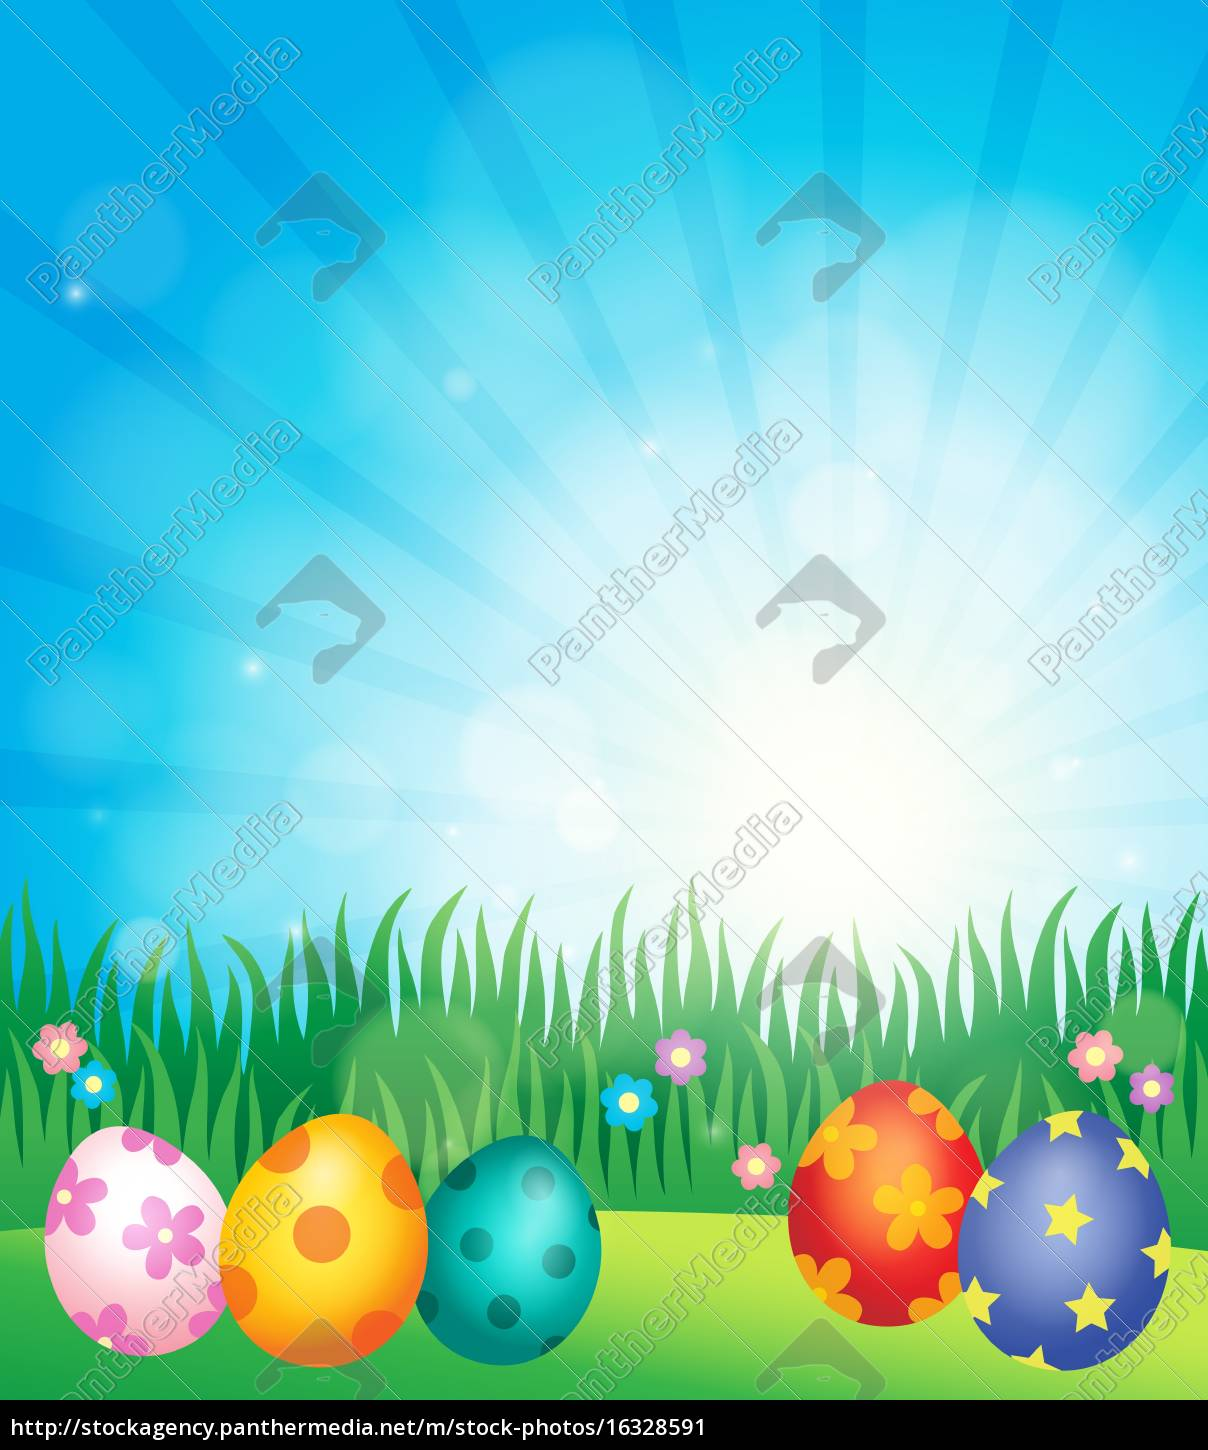 decorated, easter, eggs, theme, image, 5 - 16328591